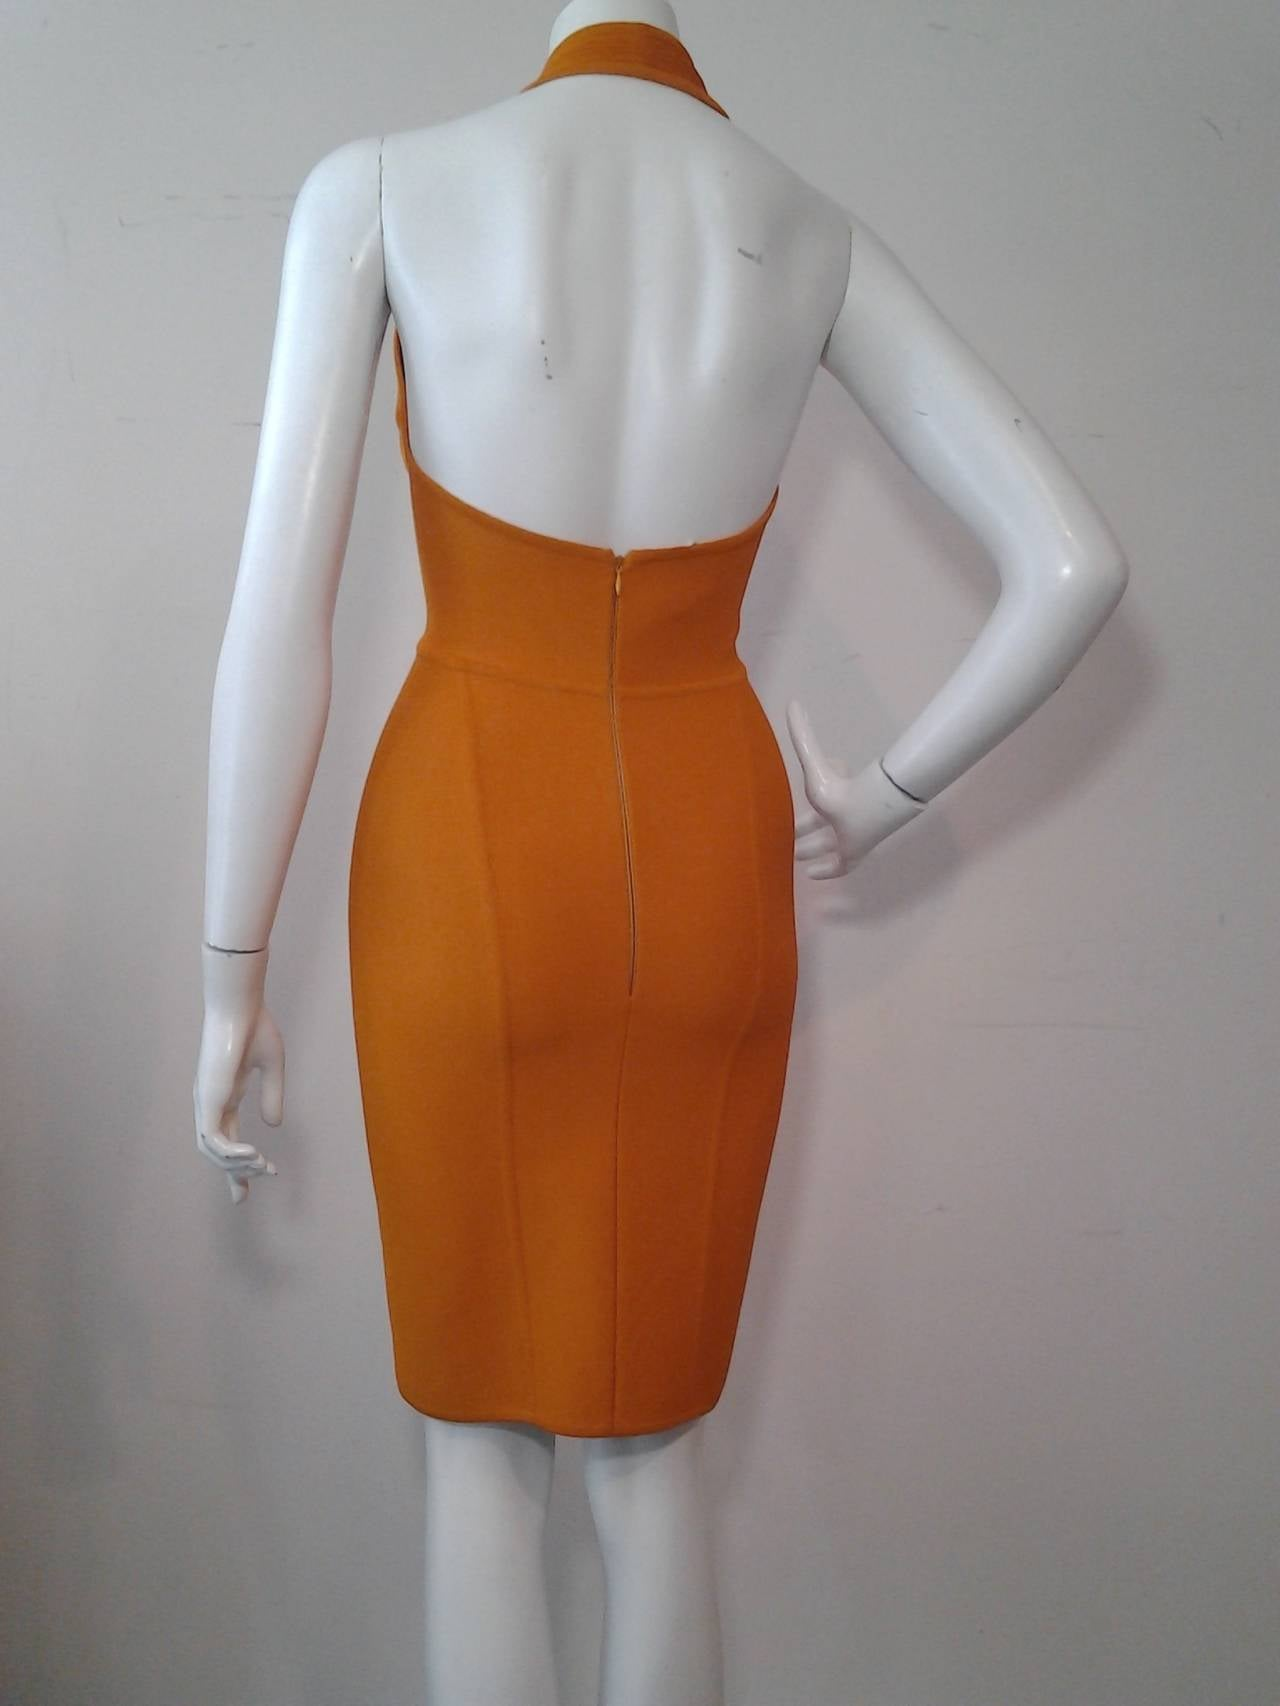 A sexy Herve Leger orange rayon and lycra knit halter dress with zipper back and contour detailing.  Featured on cover of Vogue in 2006.